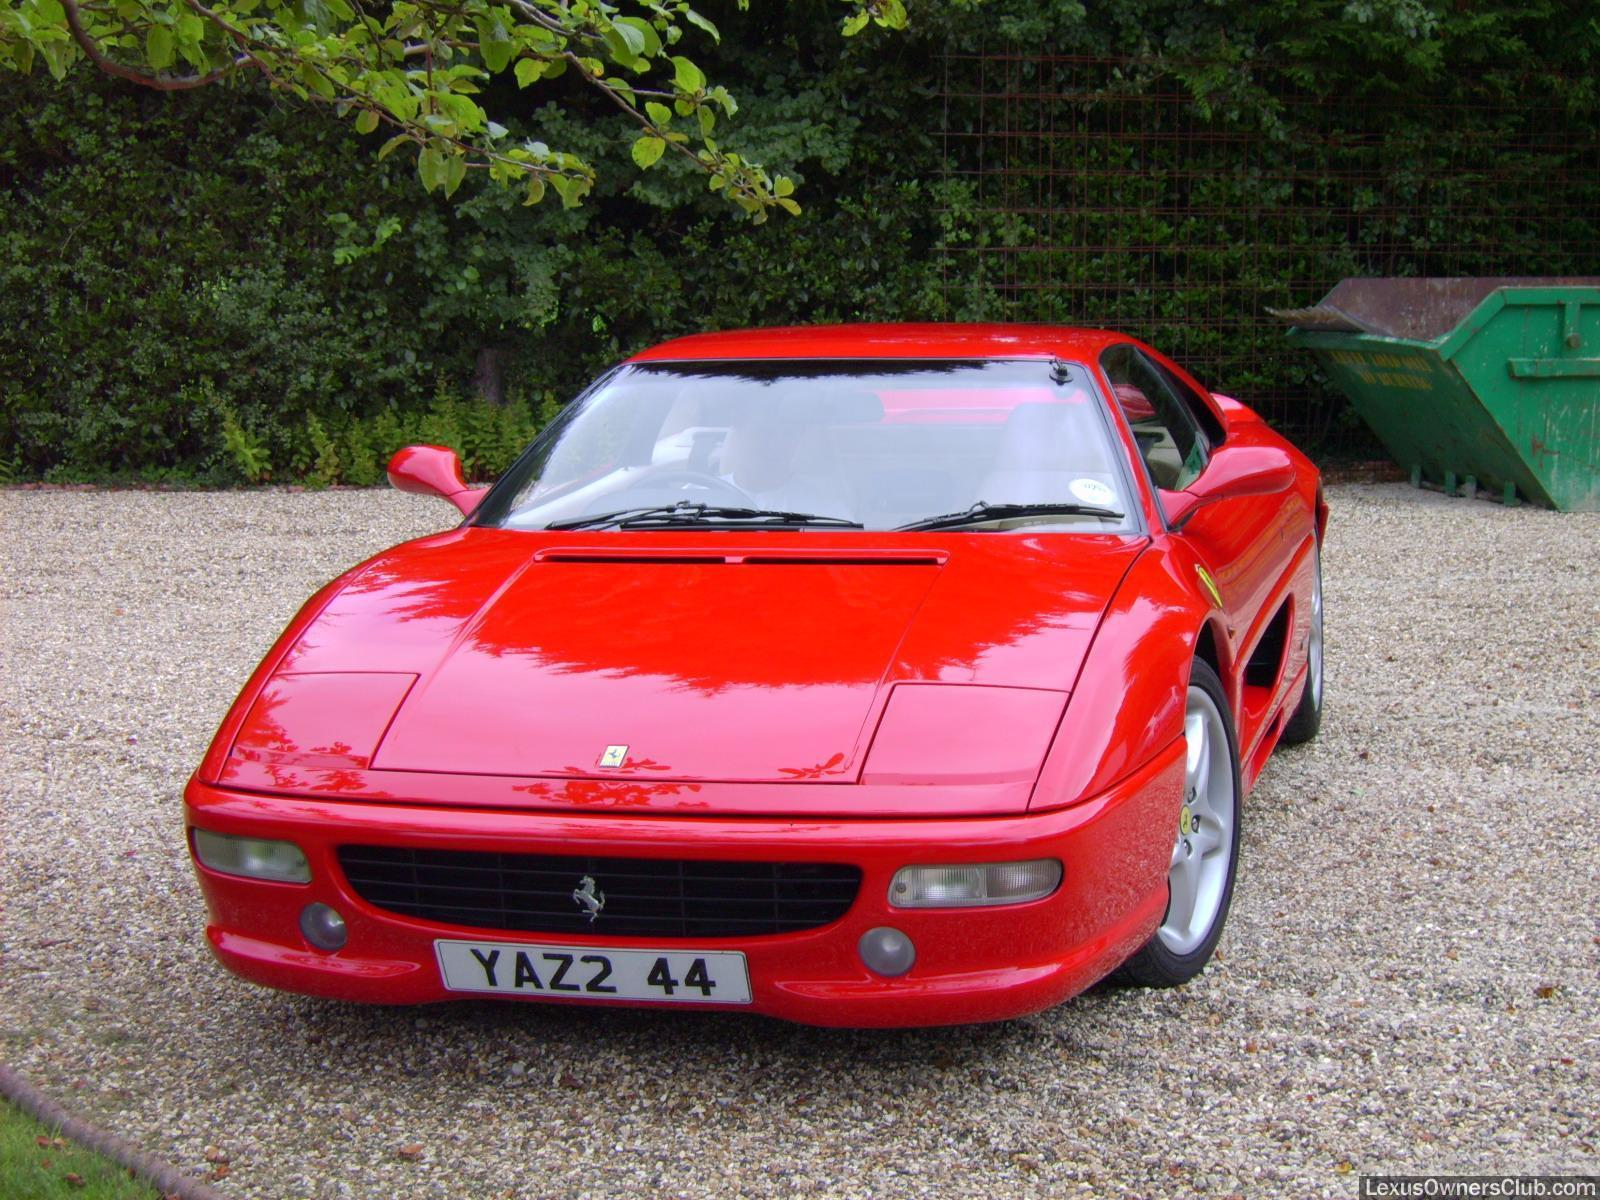 This is the front, in case you weren't aware. A F355 GTB